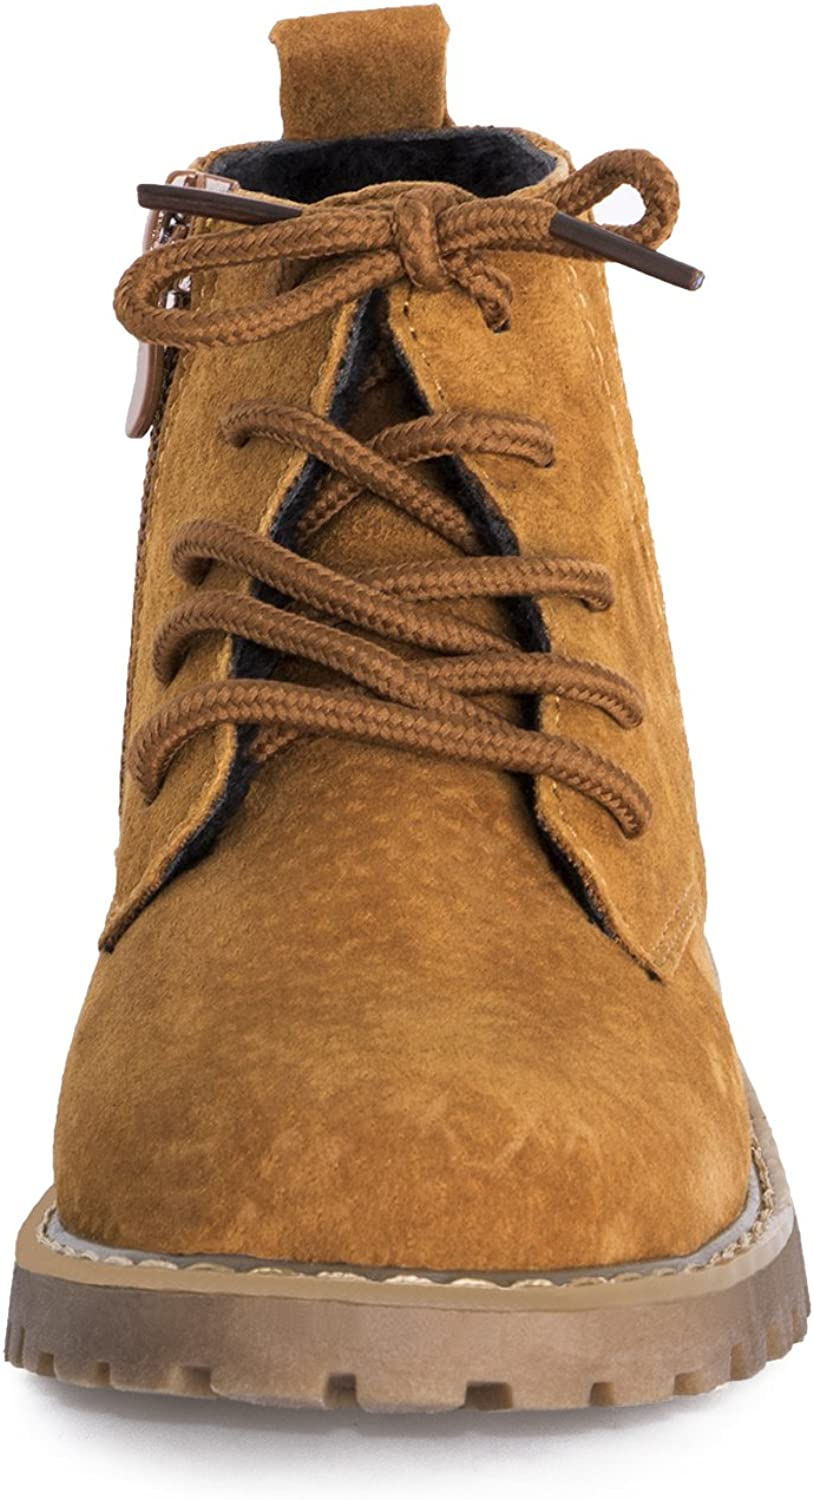 9M US Toddler, Brown DARONGFENG Toddler Kid Martin Boots Lace-up Short Ankle Shoes